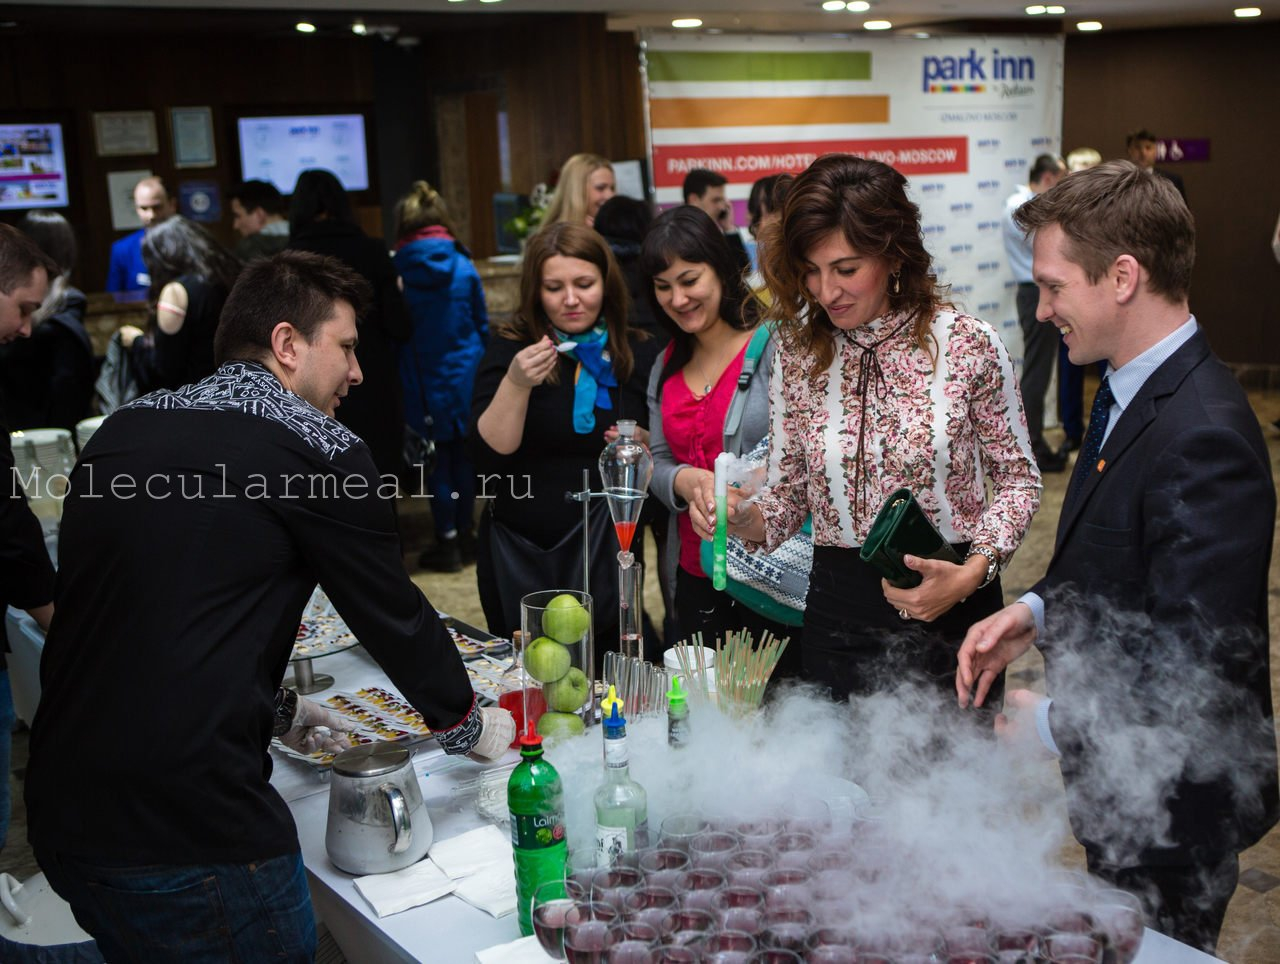 watermarked-096-_easy-resize.com_